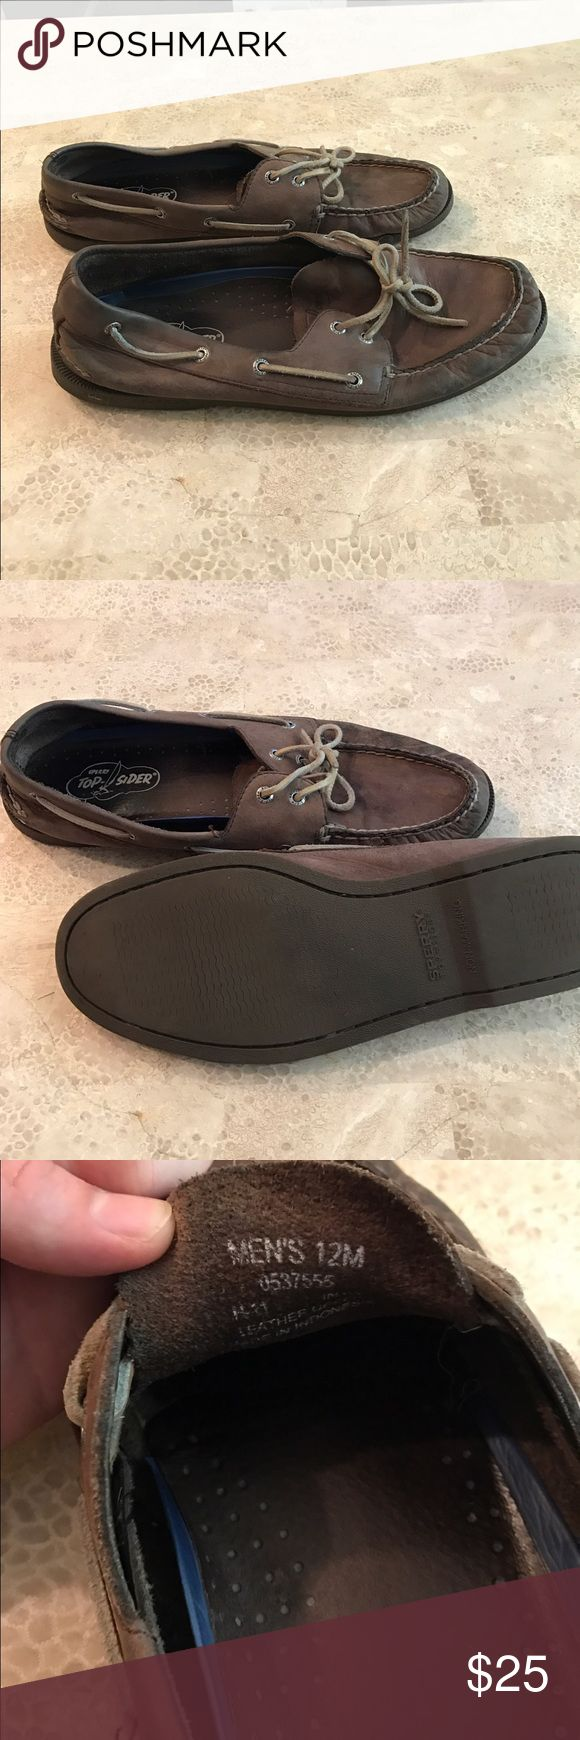 Sperry Topsiders Men's Shoes Sperry Topsiders Men's Brown Shoes Size 12 Sperry Top-Sider Shoes Boat Shoes